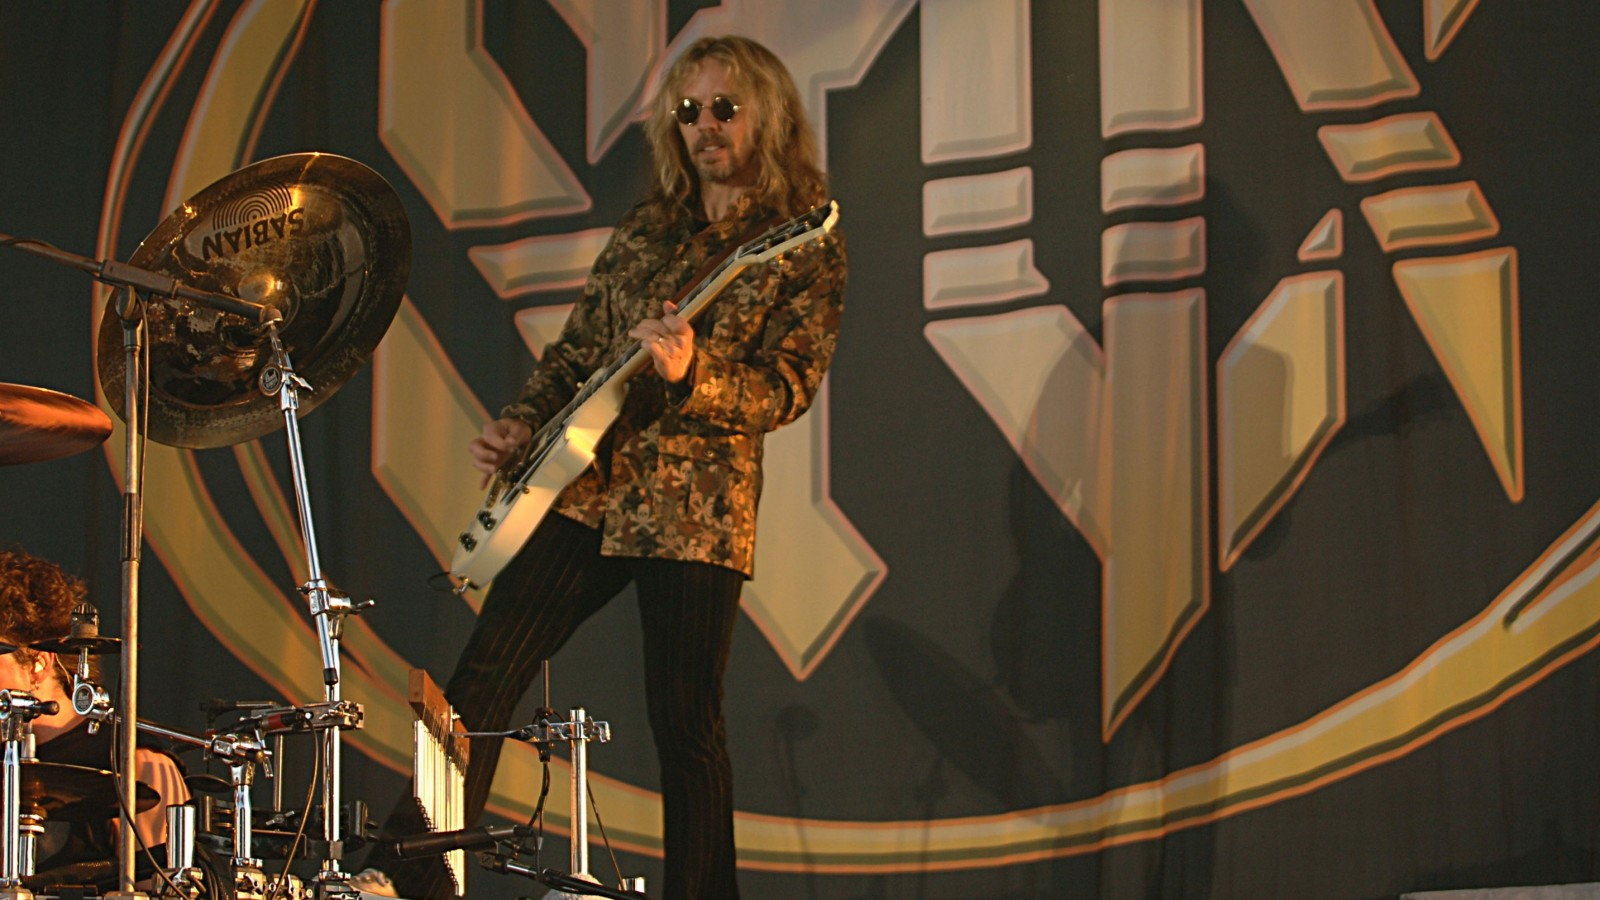 Tommy Shaw and Styx are part of a classic rock triple bill at Darien Lake Performing Arts Center.